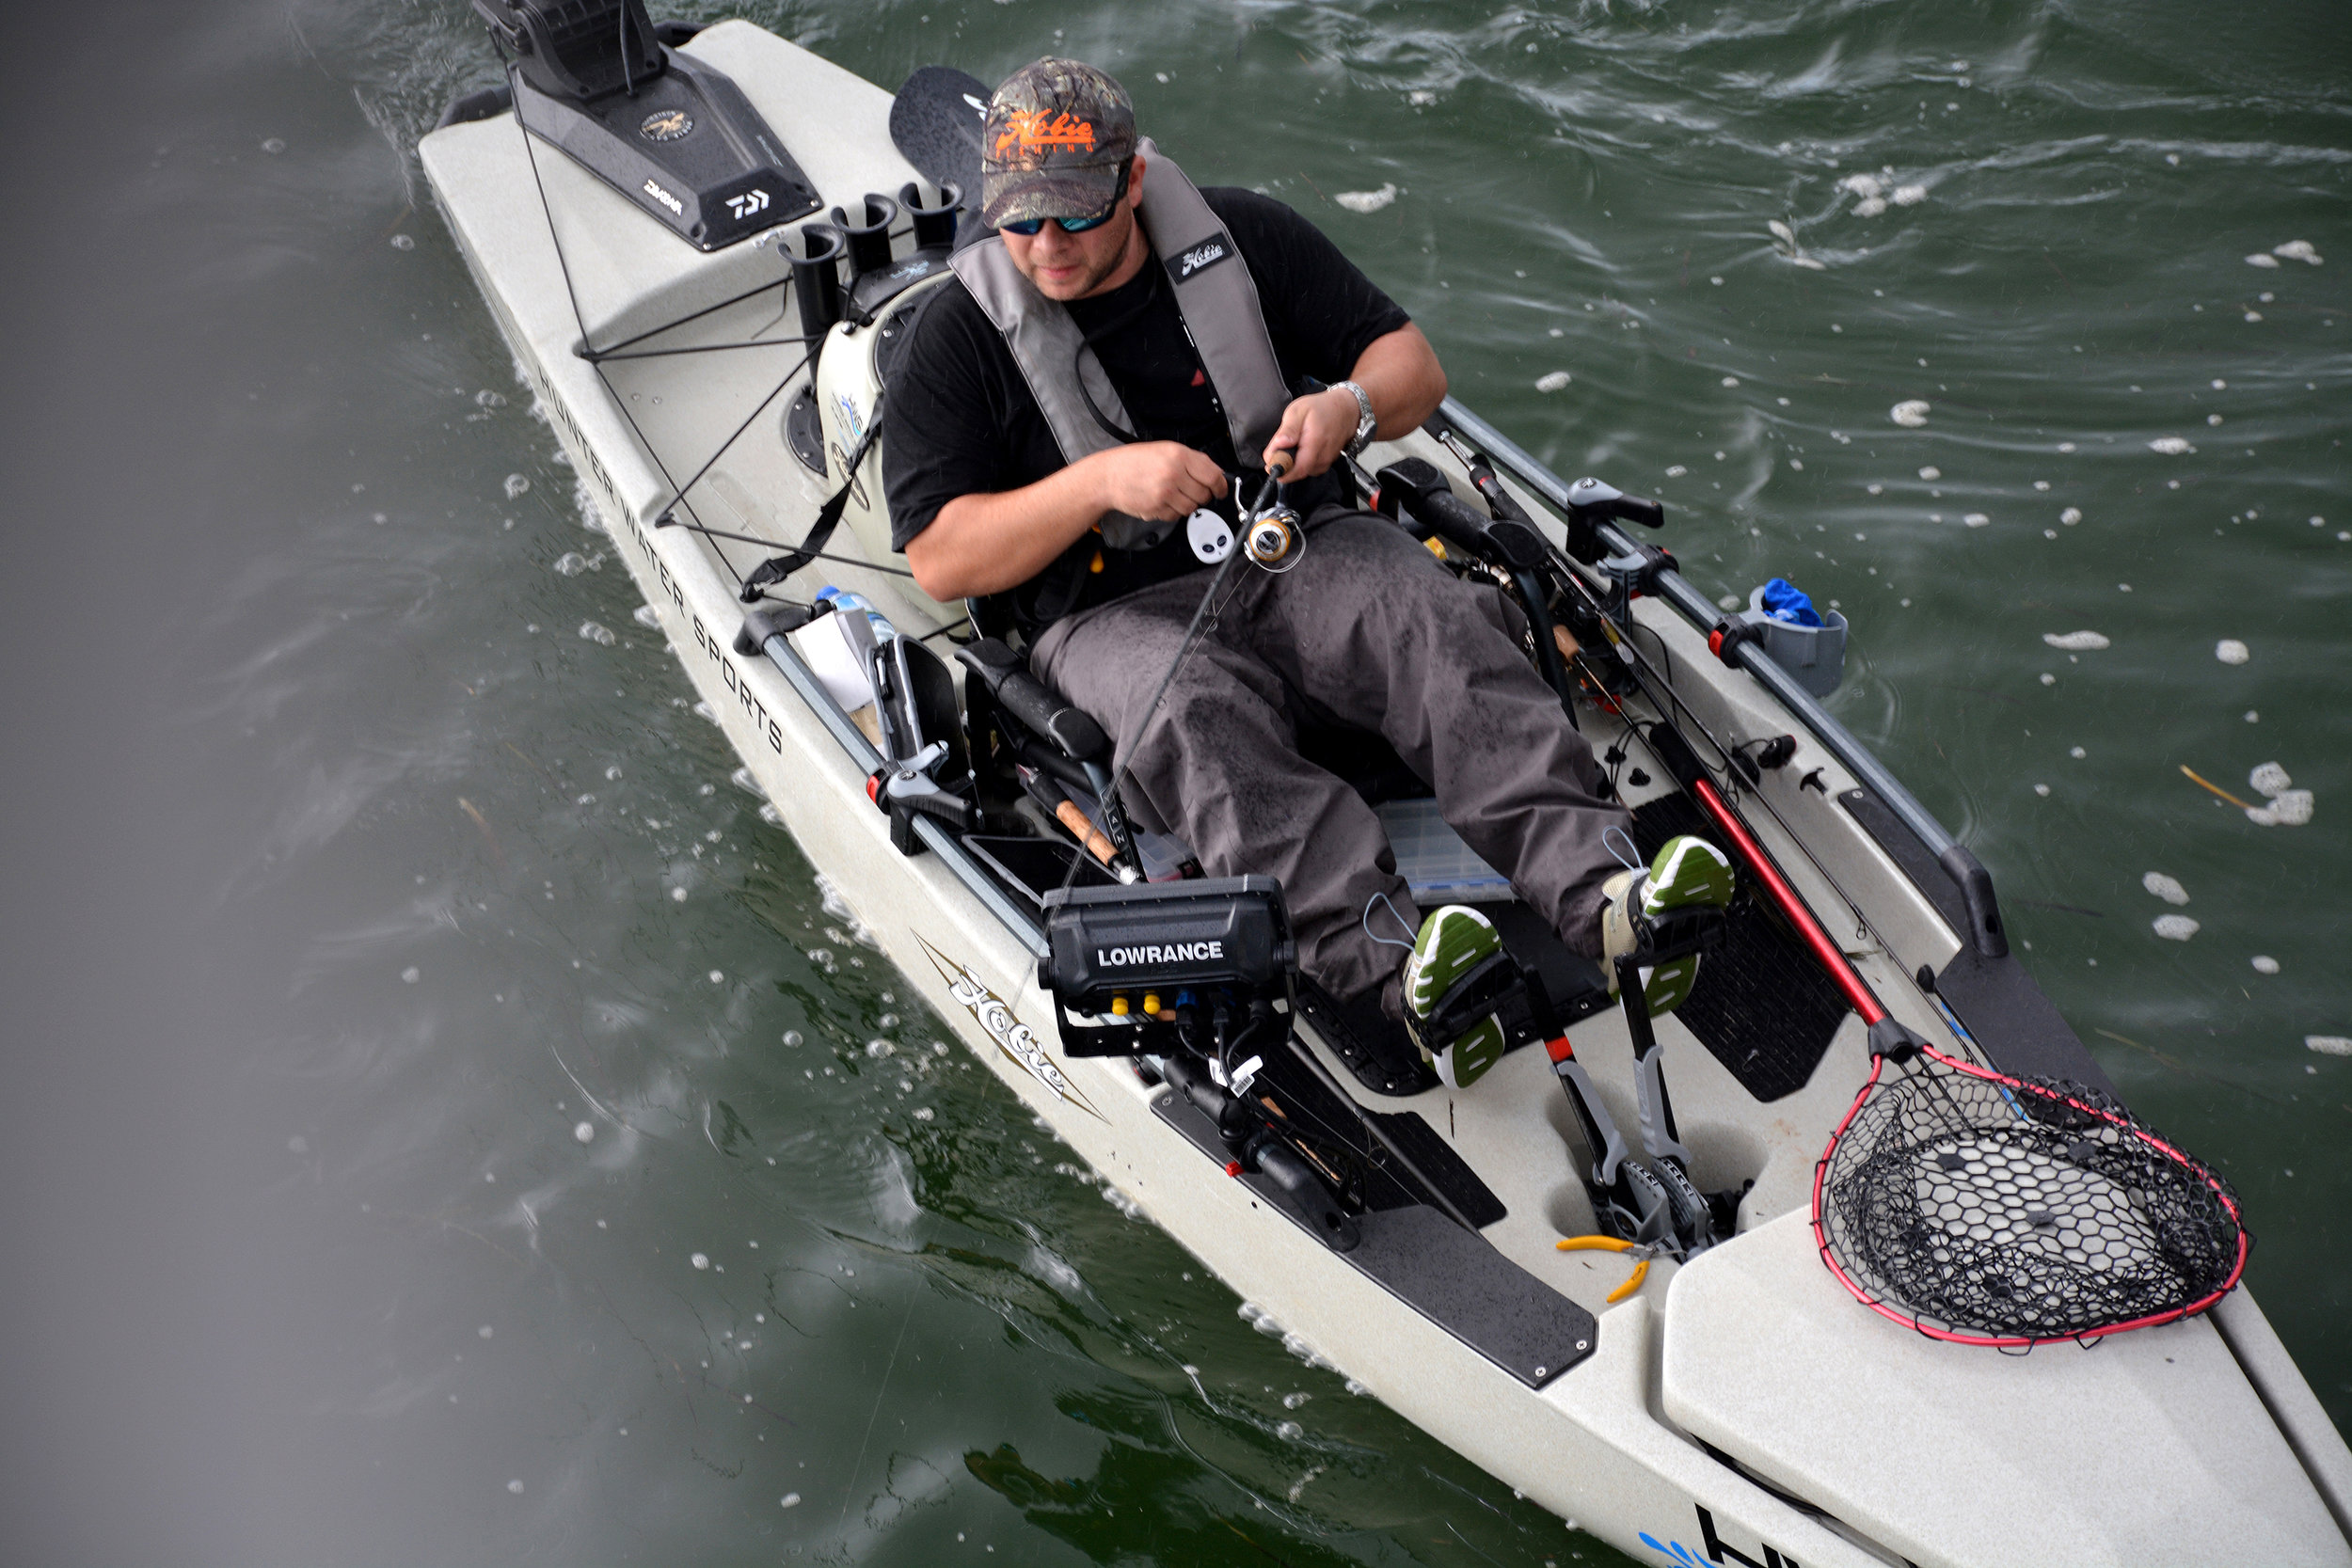 ProAngler14-action-fishing--dune-topview-rigged-livewell-powerpole-BobAUS-9565-lg.jpg